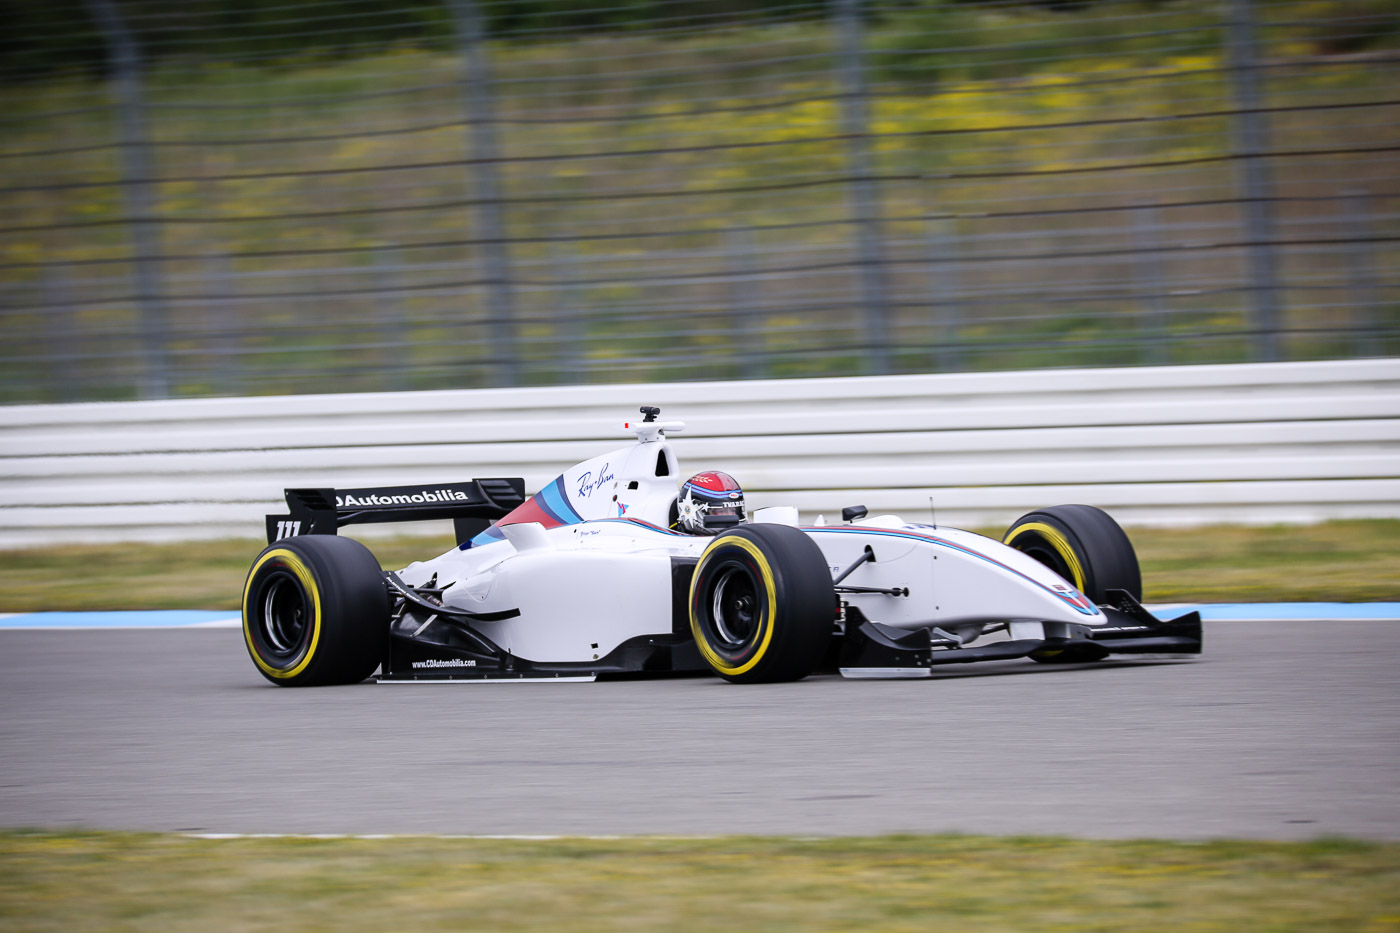 Dallara - World Series by Renault 3.5